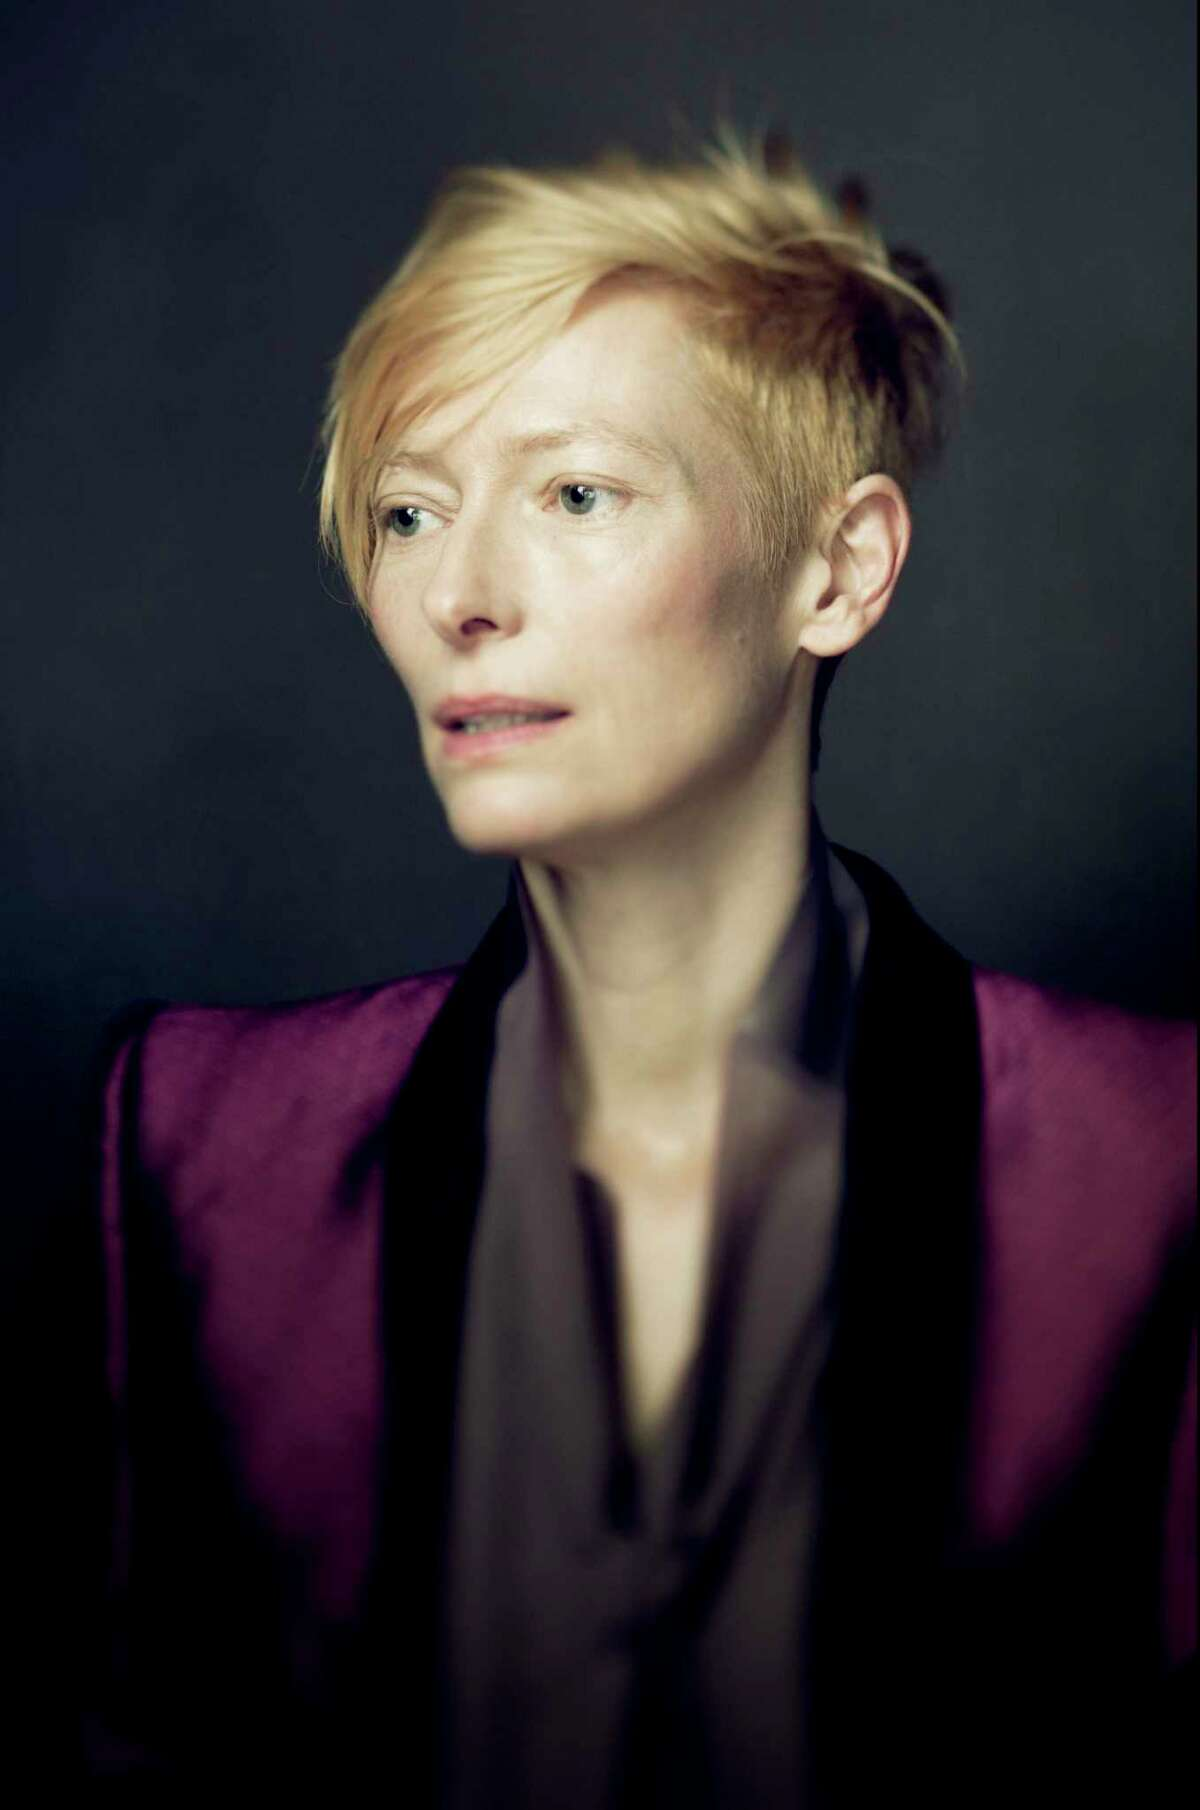 Tilda Swinton in New York, Nov. 28, 2011. Although she has an Oscar and indie cred, Swinton, who is currently in New York to promote her latest movie,